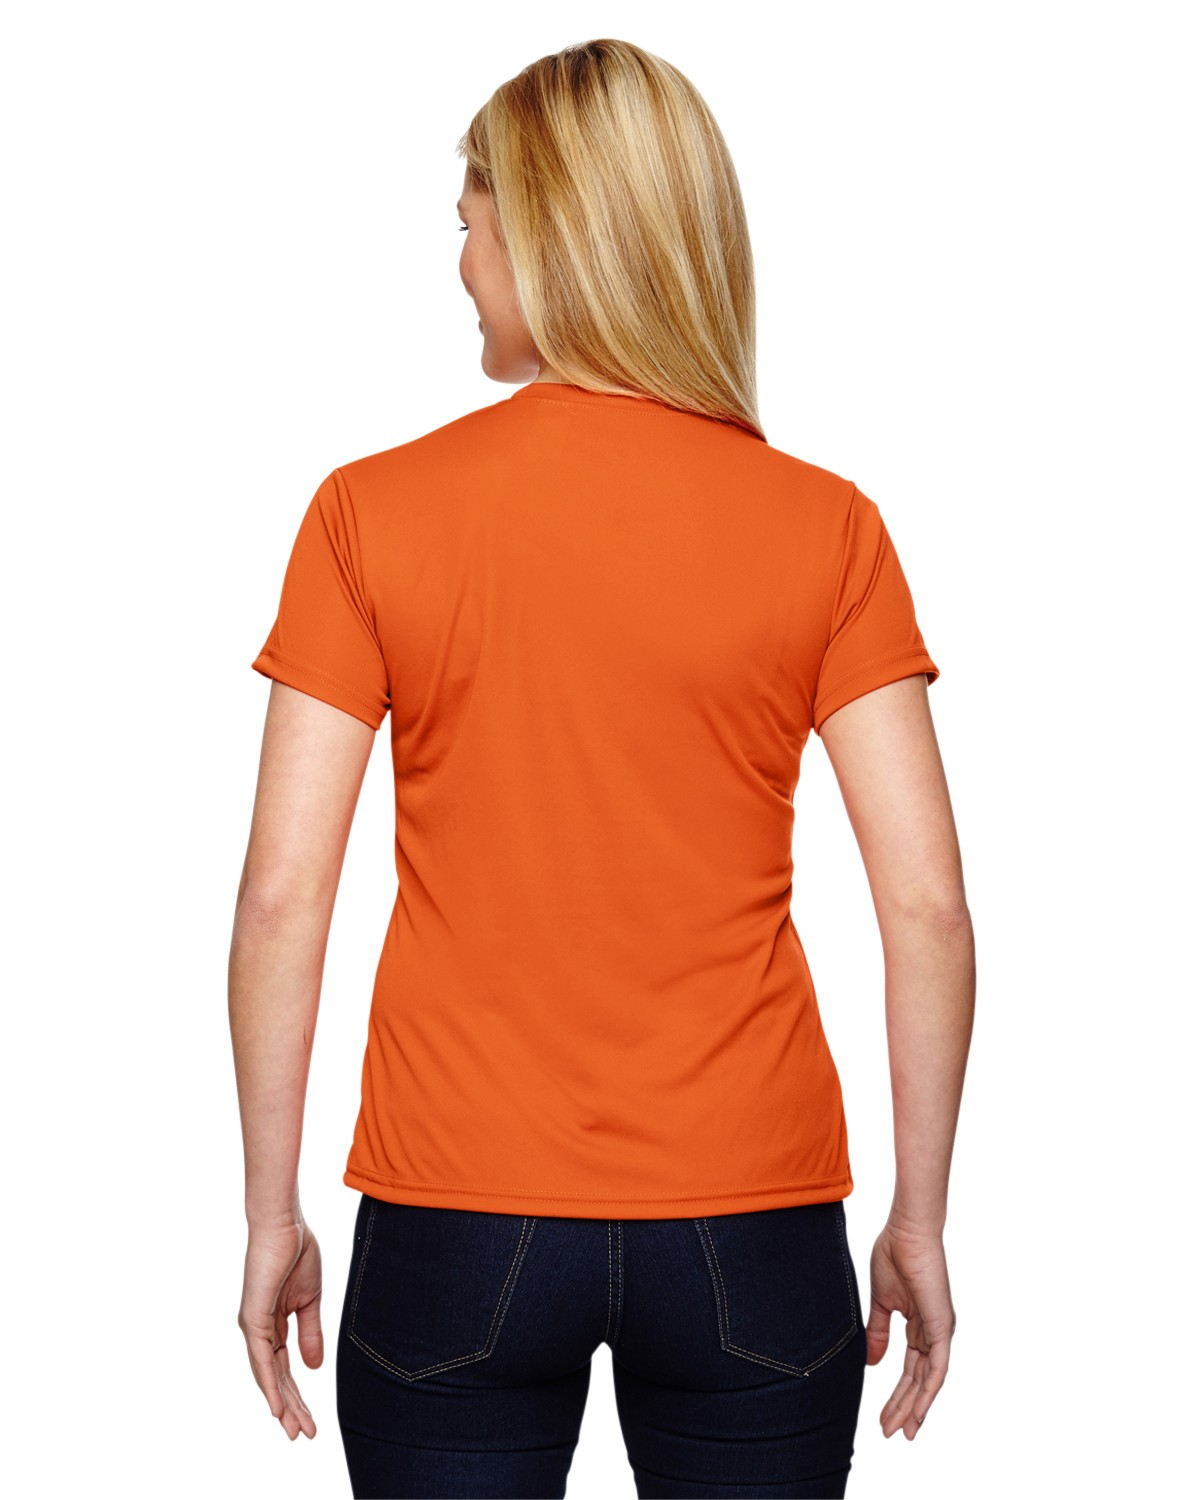 NW3201 A4 ATHLETIC ORANGE